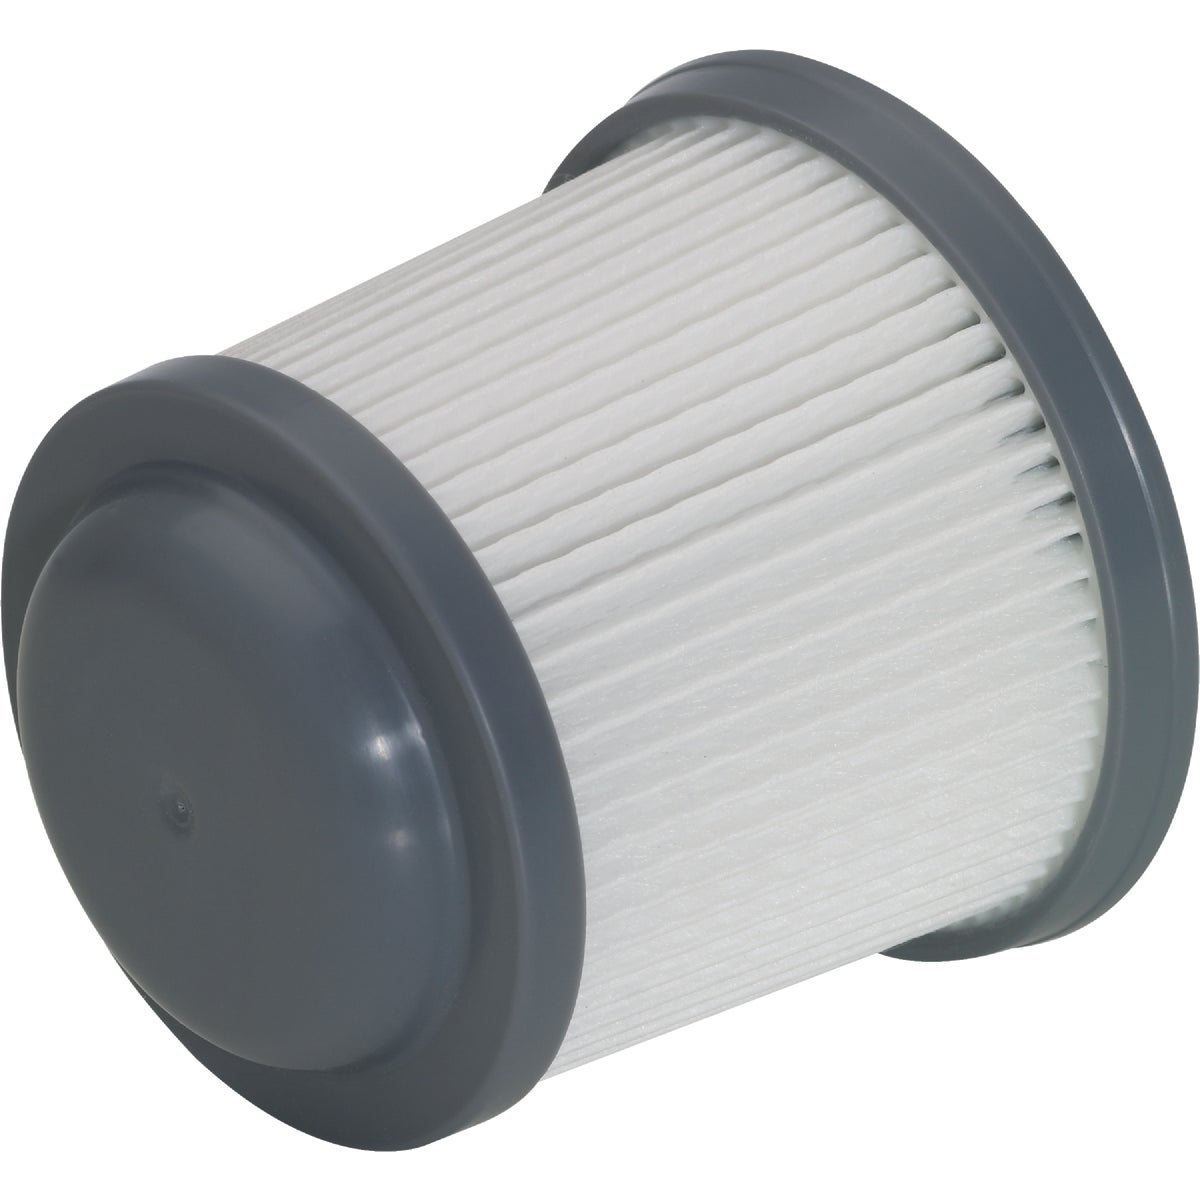 PIVOT VAC REPL. FILTER - PVF110 by Black & Decker